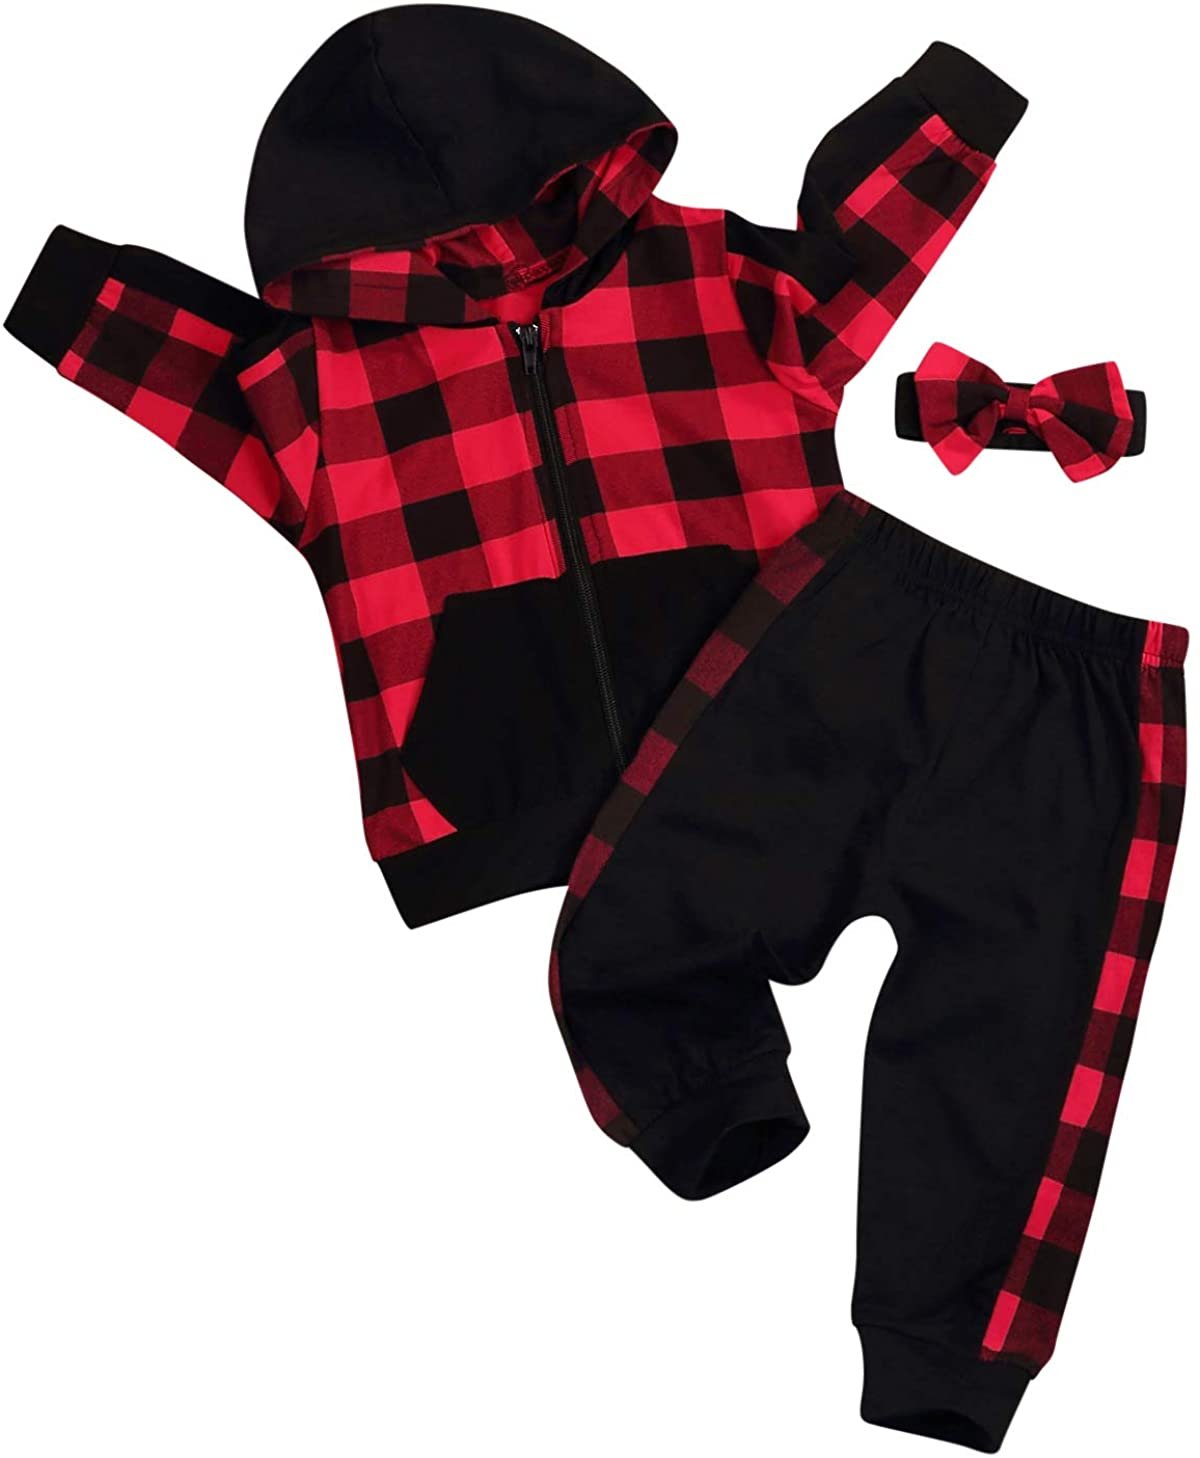 Christmas Outfits Infant Toddler Baby Boy Girls Long Sleeve Red Plaid Hoodie Tops Pants Fall Winter Clothes Sets 2Pcs